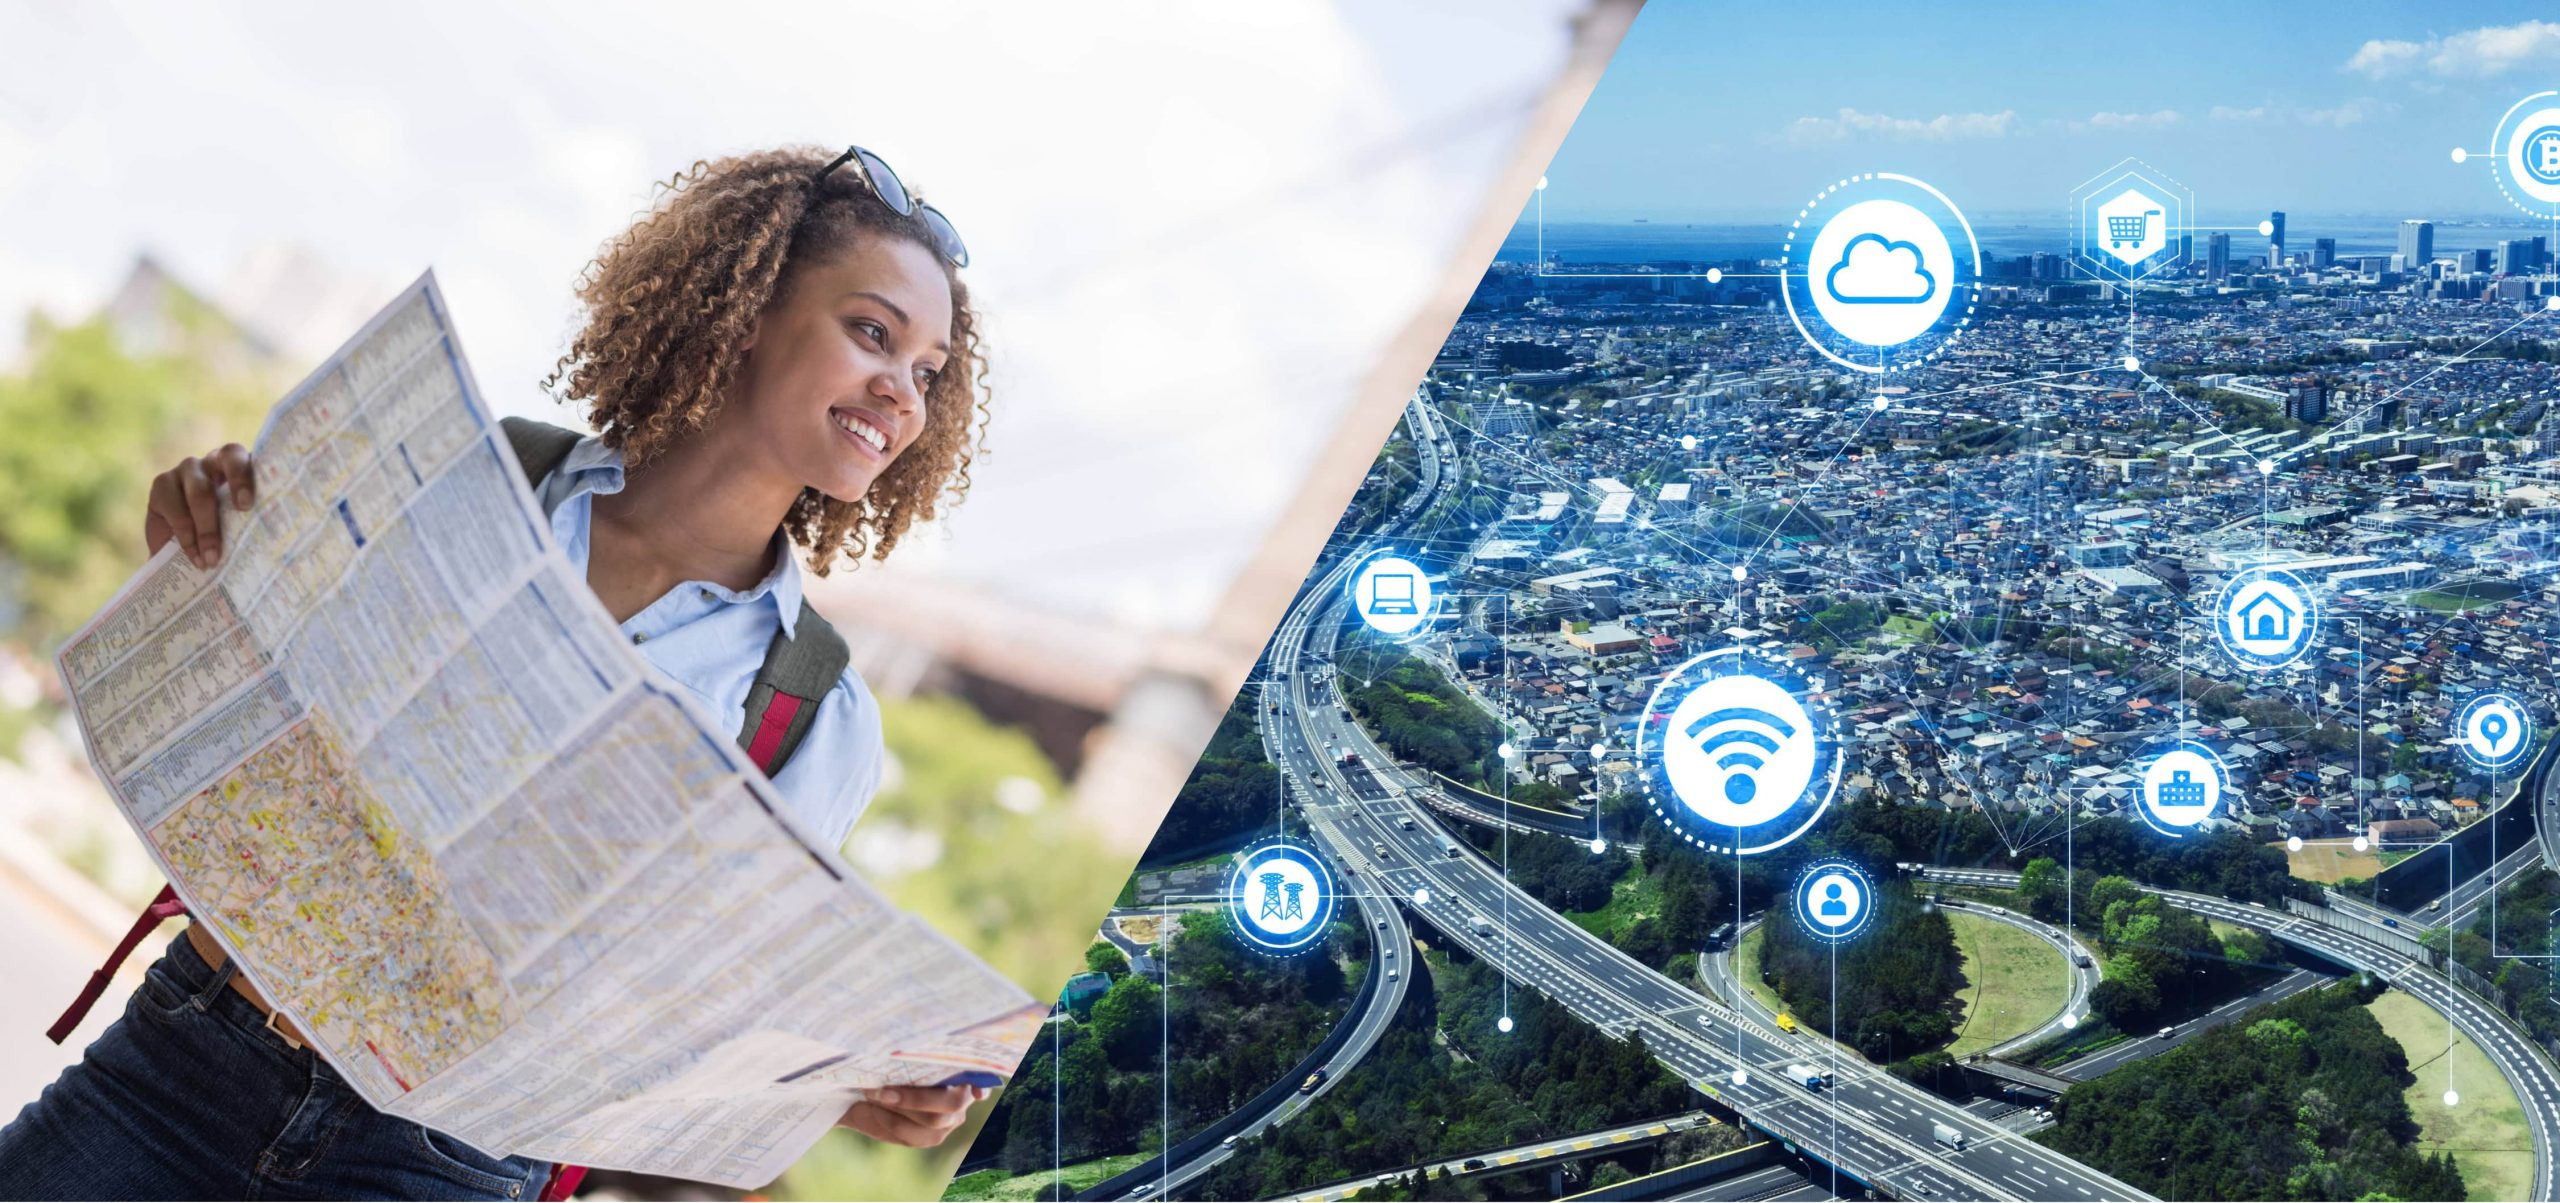 A woman holding a map and looking at a view overlooking a city landscape.thinking Business Development and Customer Experience.